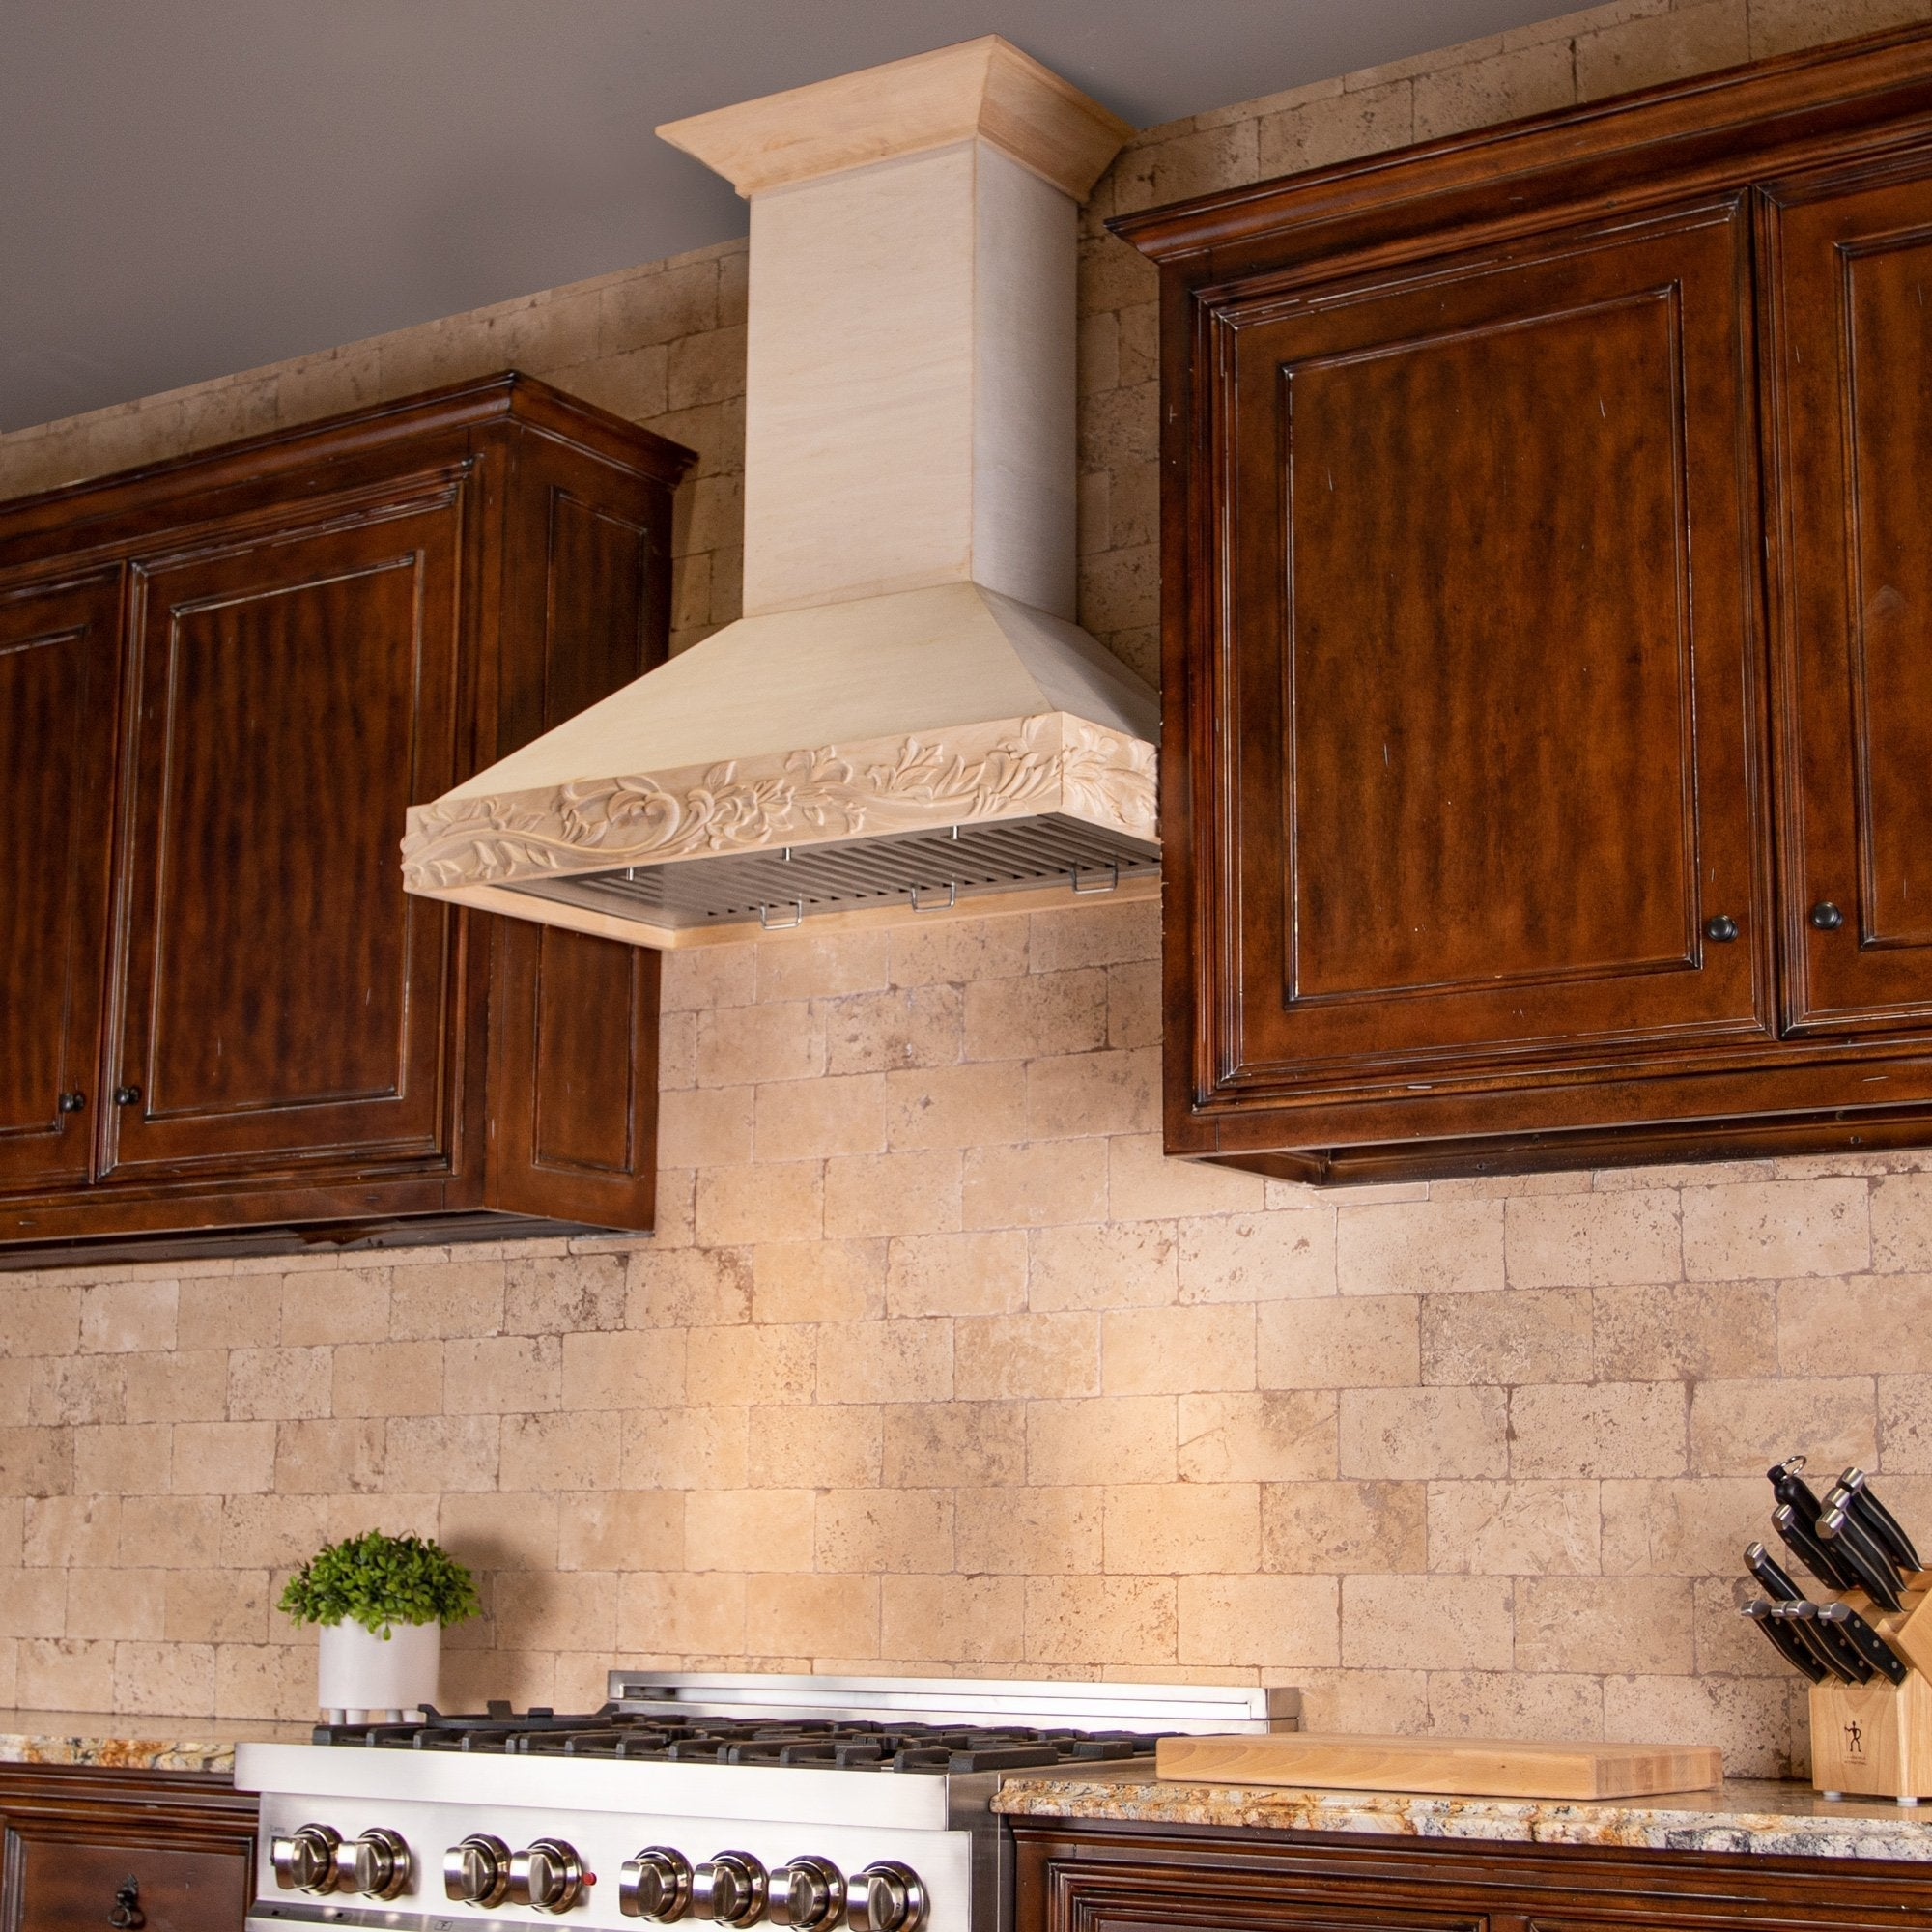 ZLINE Kitchen and Bath, ZLINE Unfinished Wooden Wall Mount Range Hood - Includes Motor (KBUFC), KBUFC-30,